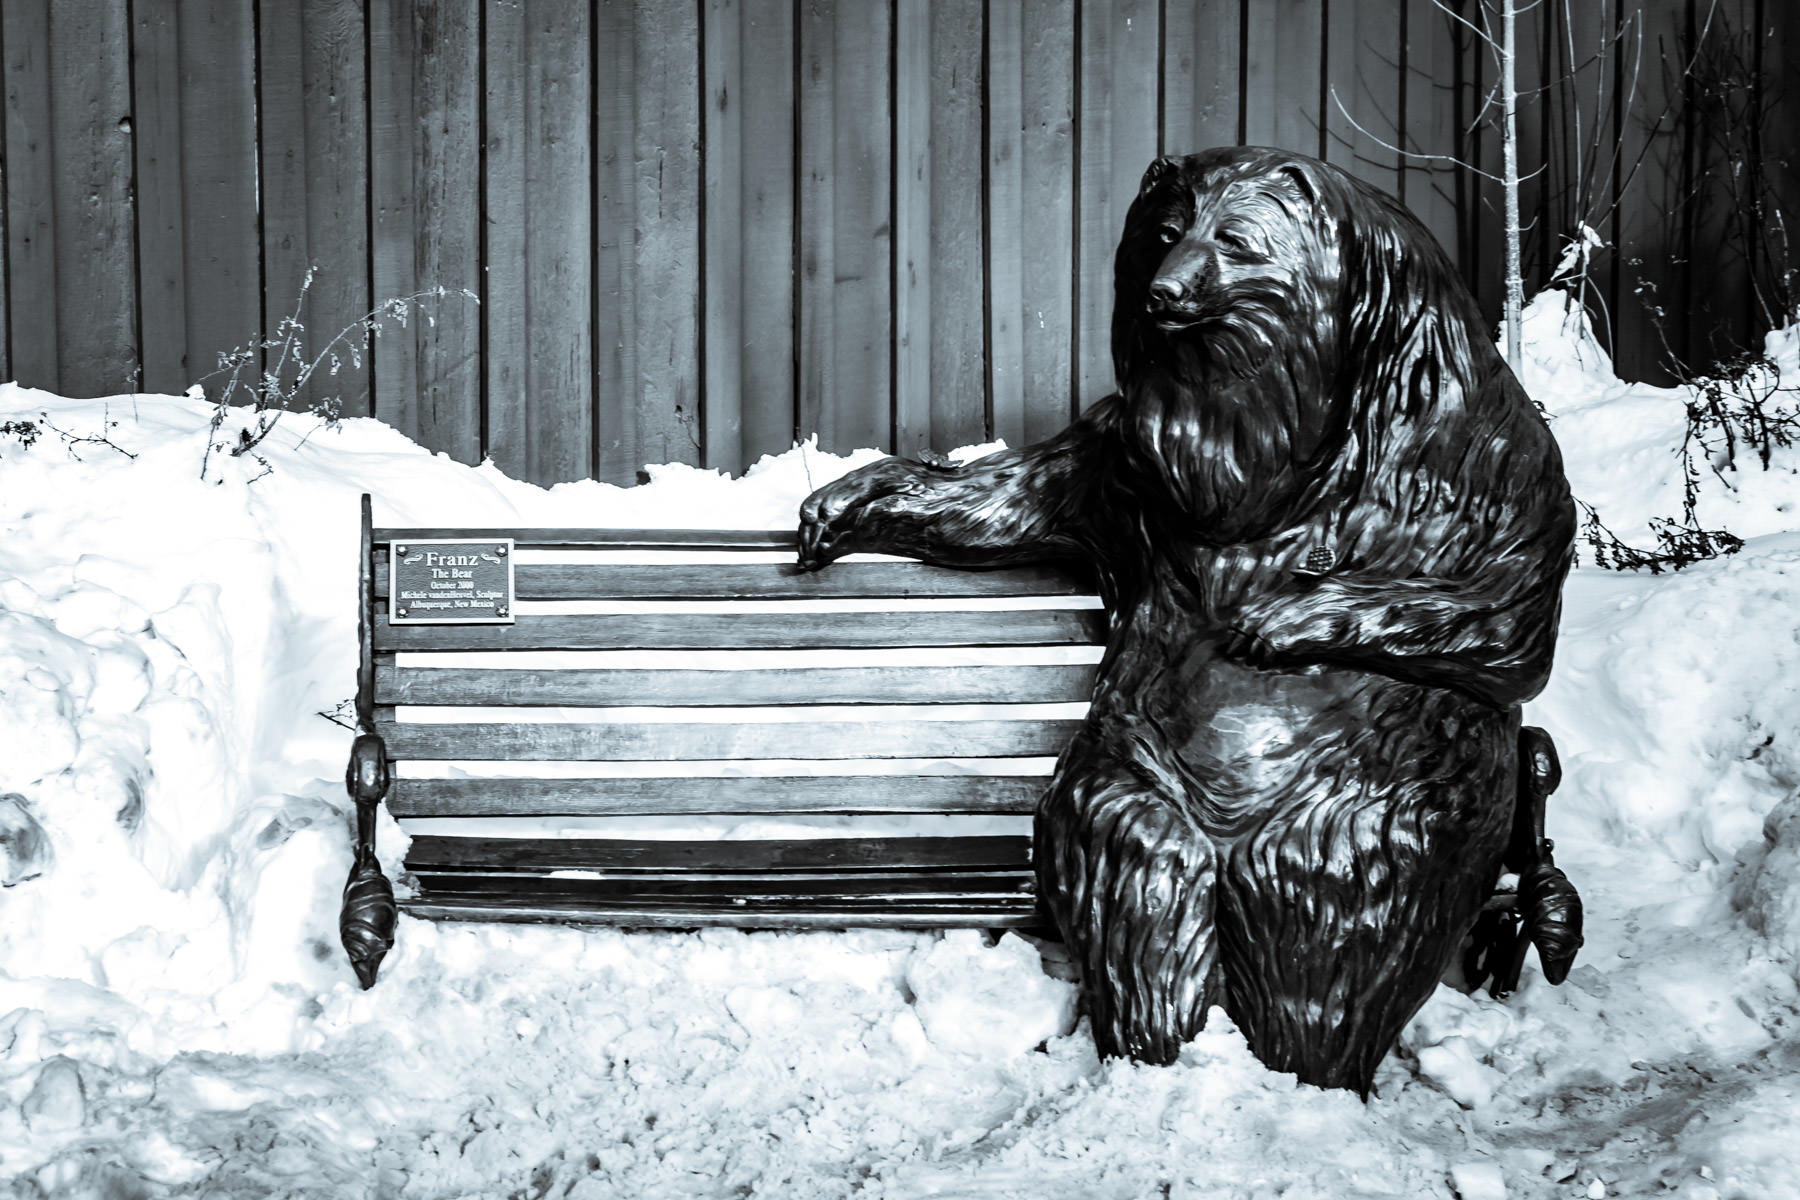 A bronze sculpture, Franz the Bear, by Michele Vandenheuvel, welcomes guests to sit next to him on a Park City, Utah, bench.